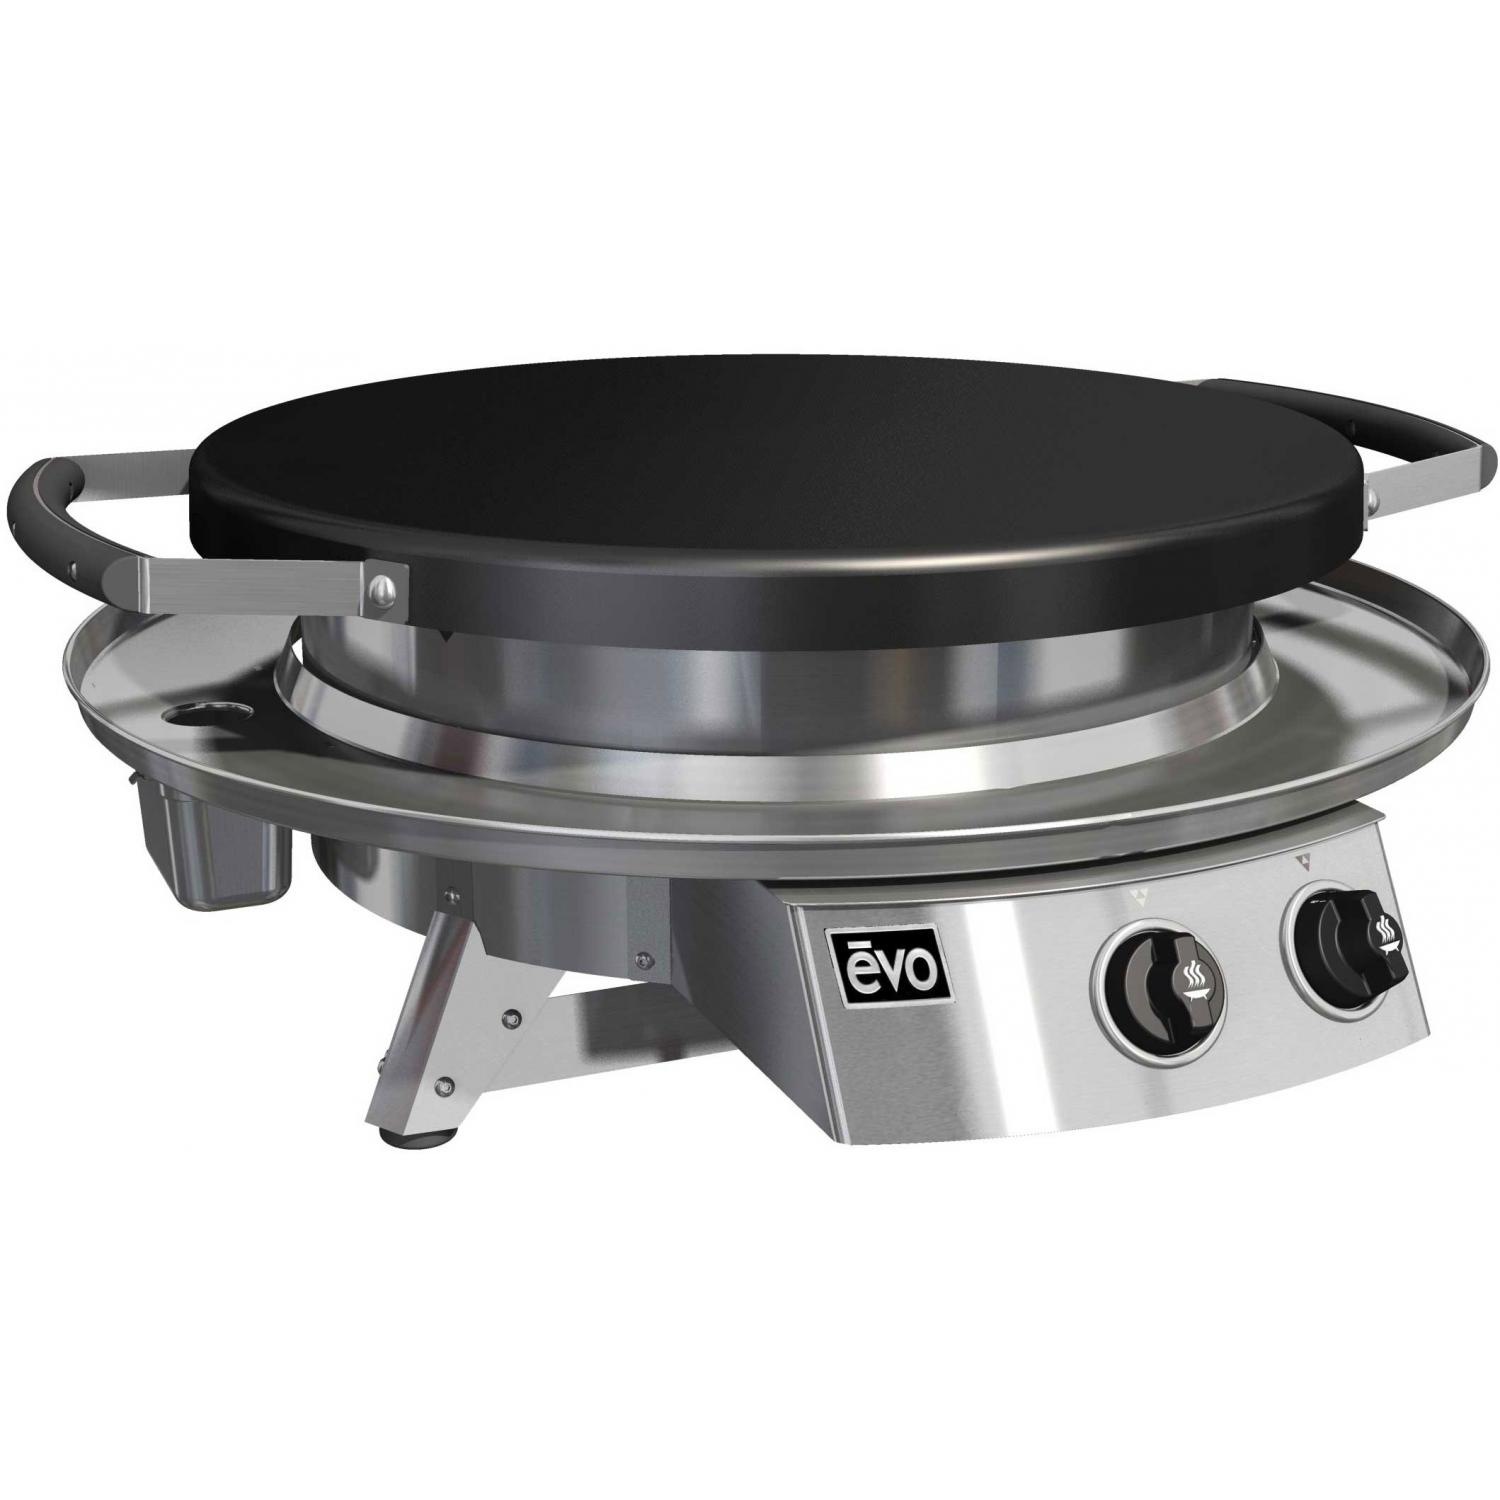 Evo Professional Classic Tabletop Flattop Grill - Natural Gas